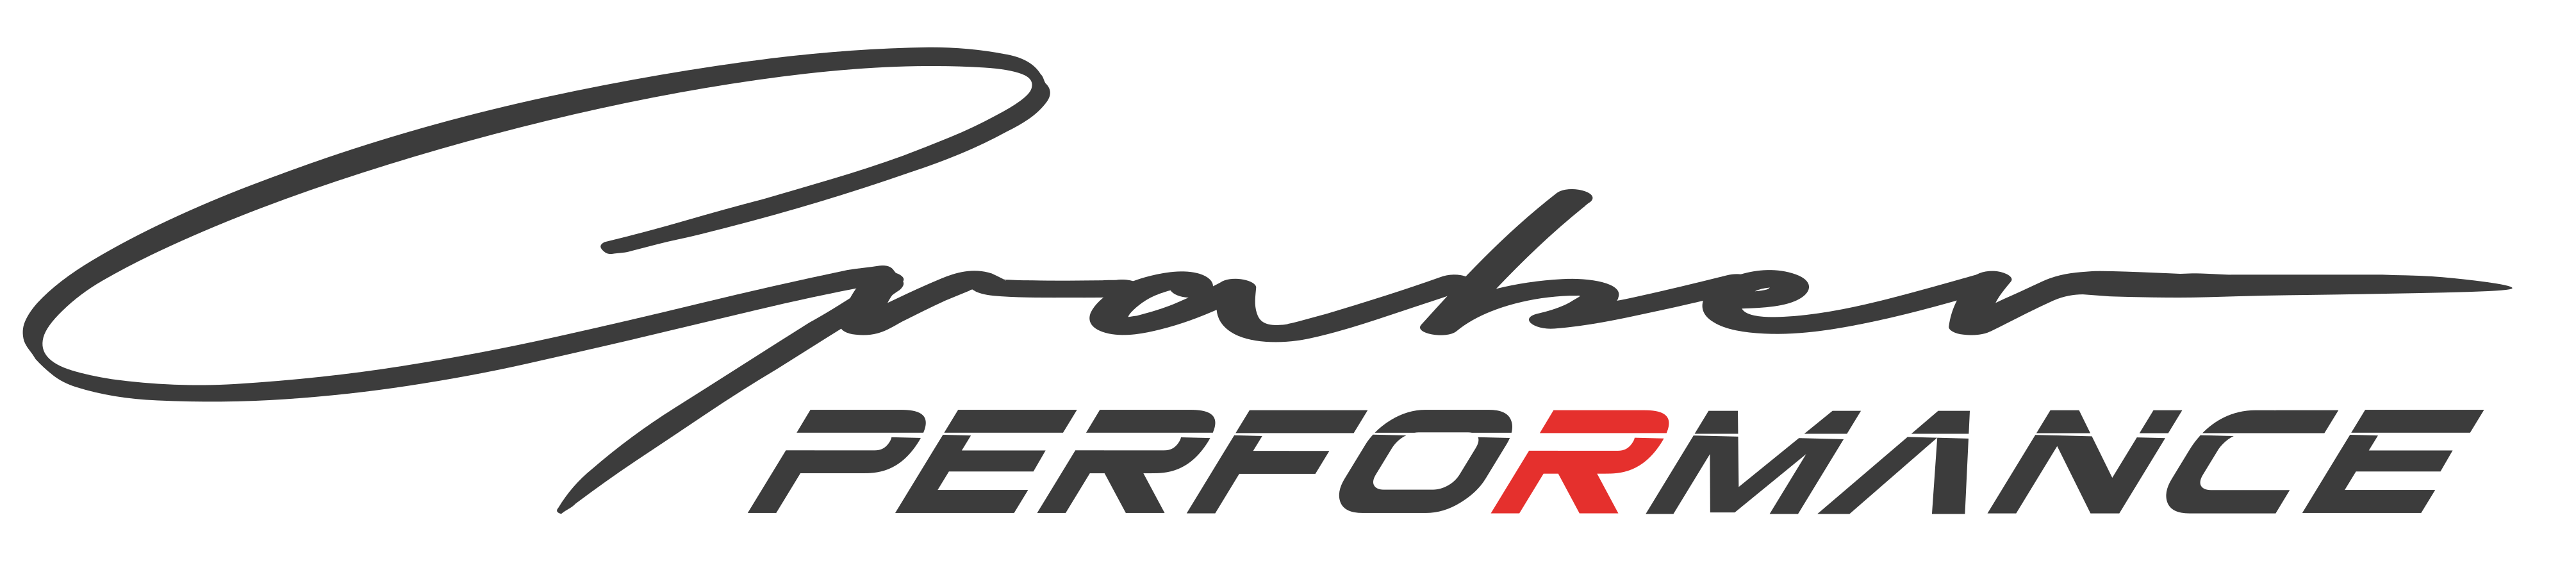 Graber Performance-Logo